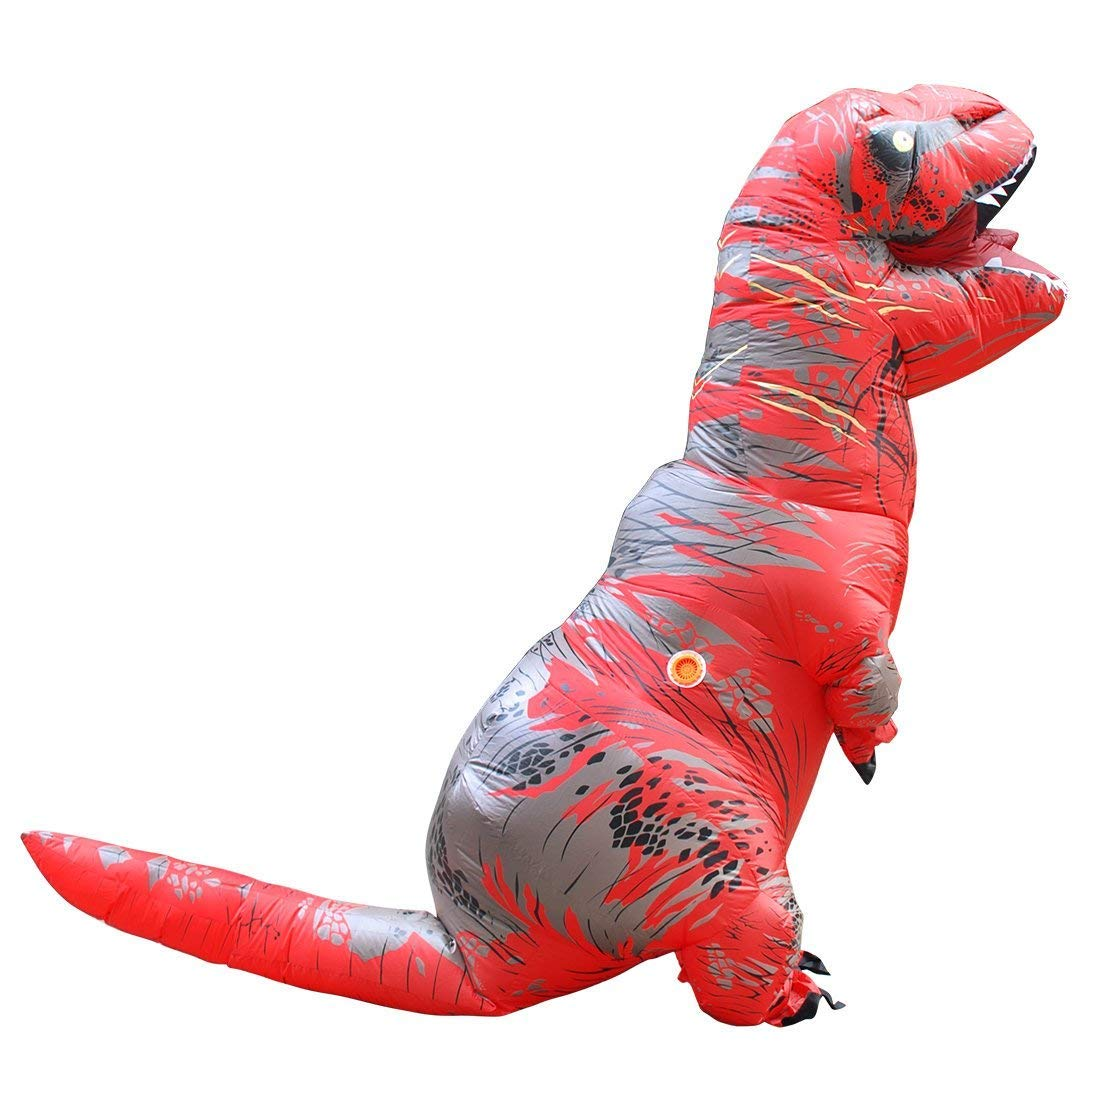 Amazon.com: Darshion Adult Inflatable T-rex Costume Dinosaur ...